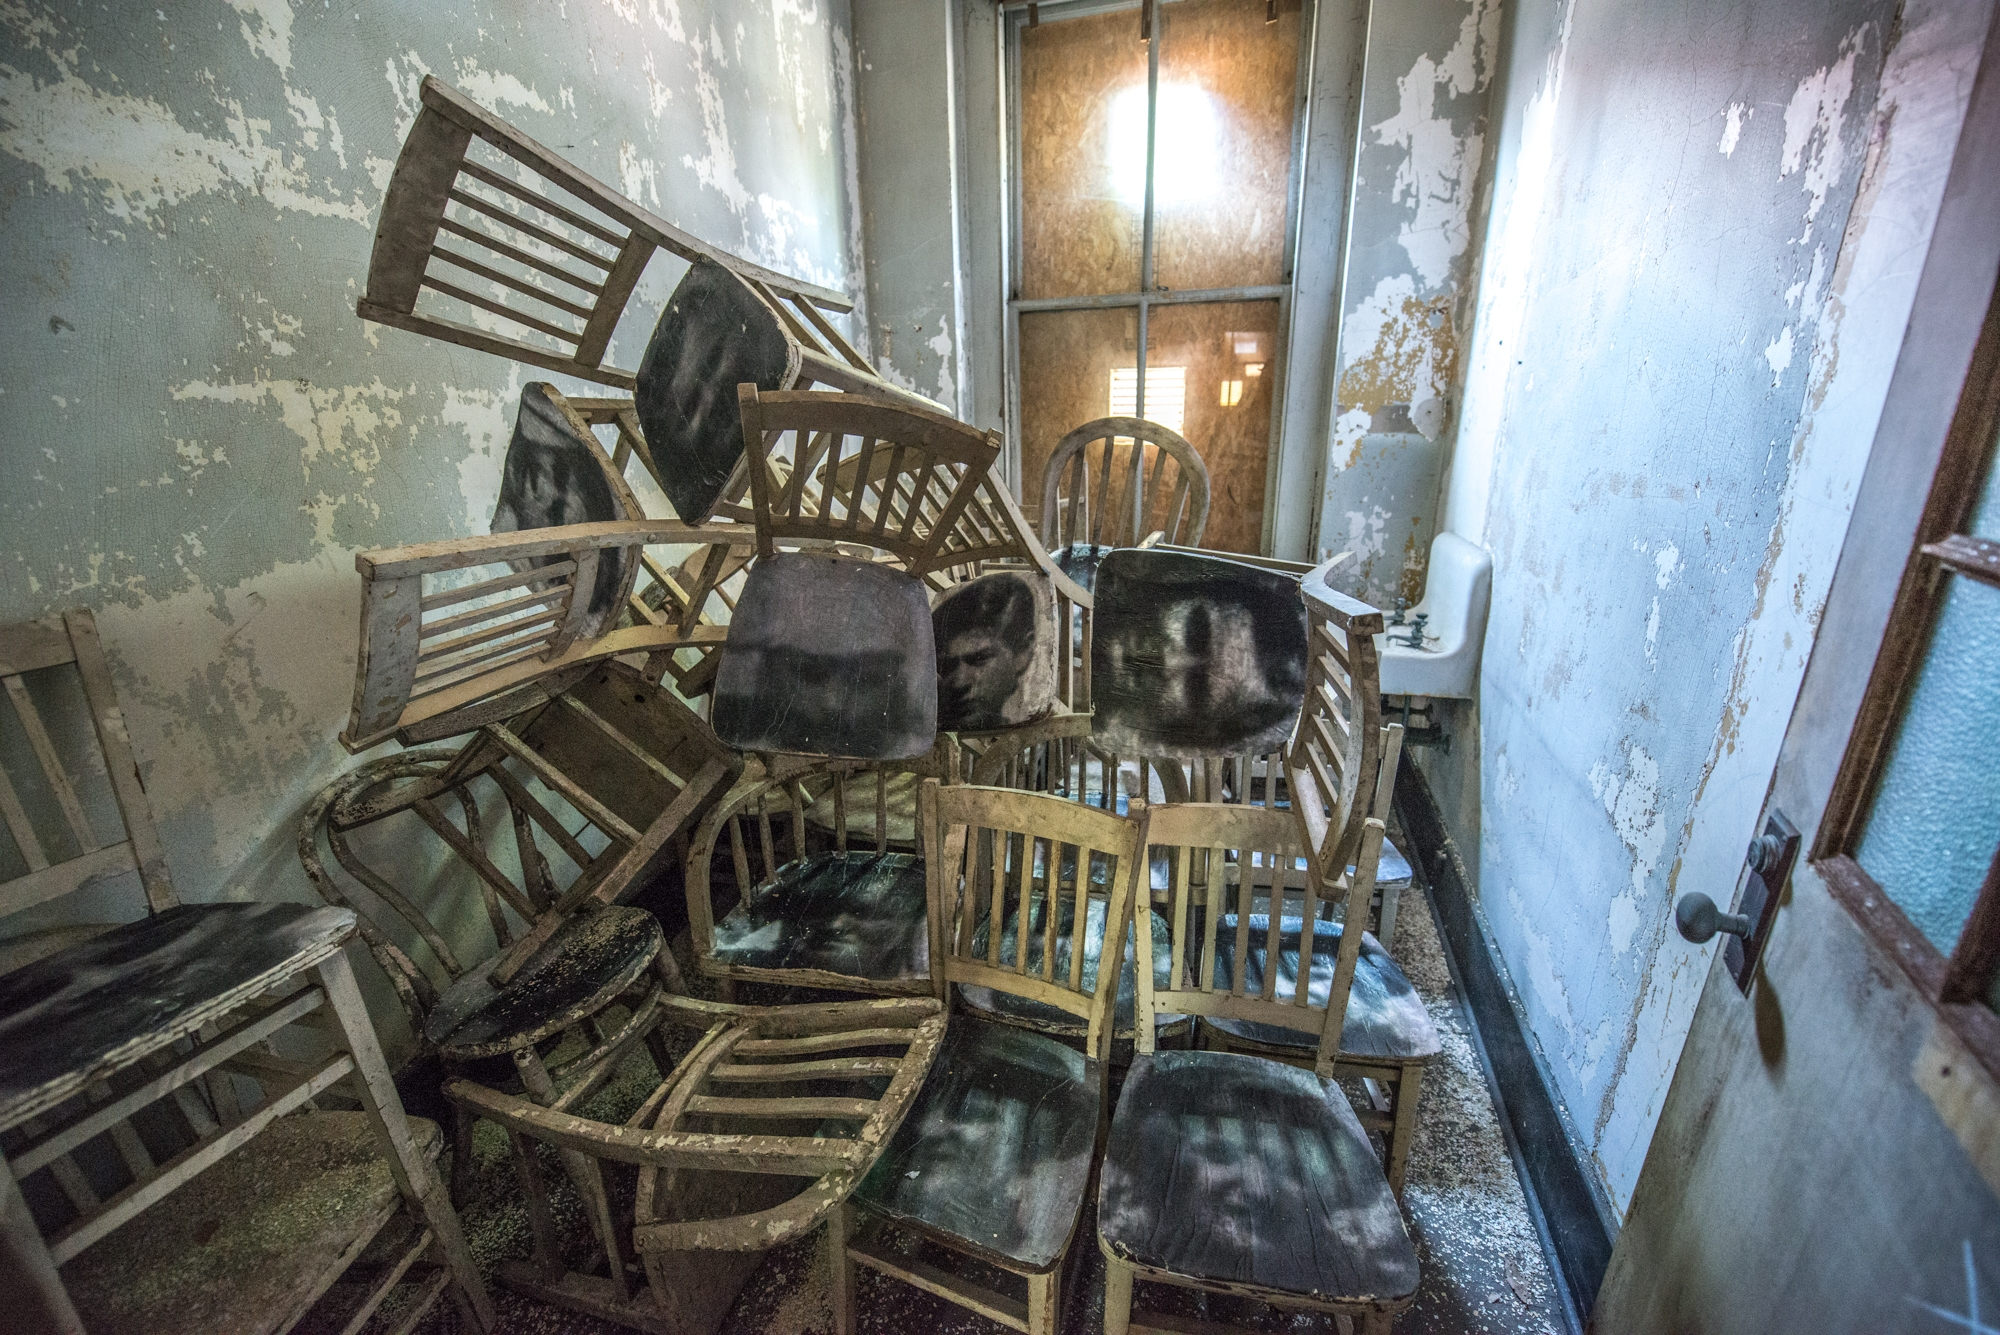 ghosts of ellis island chairs 2